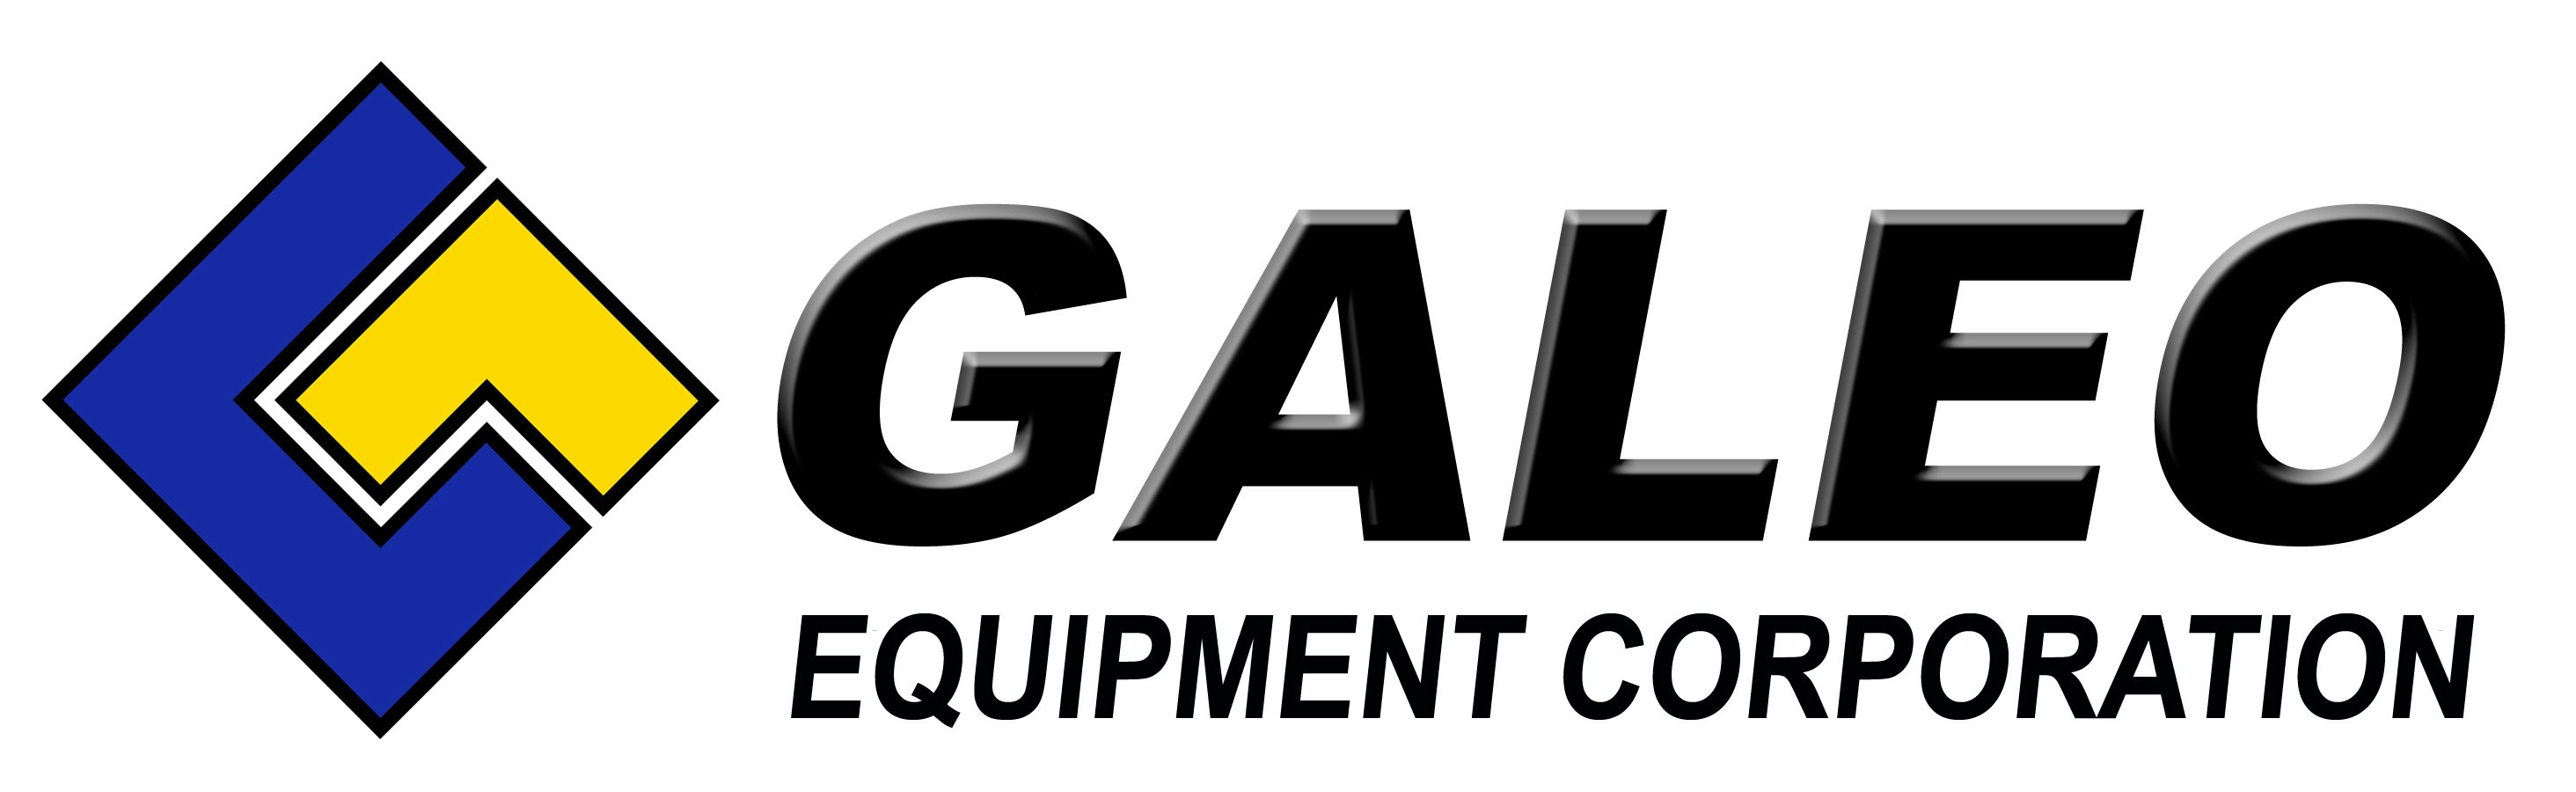 Galeo Equipment Corporation